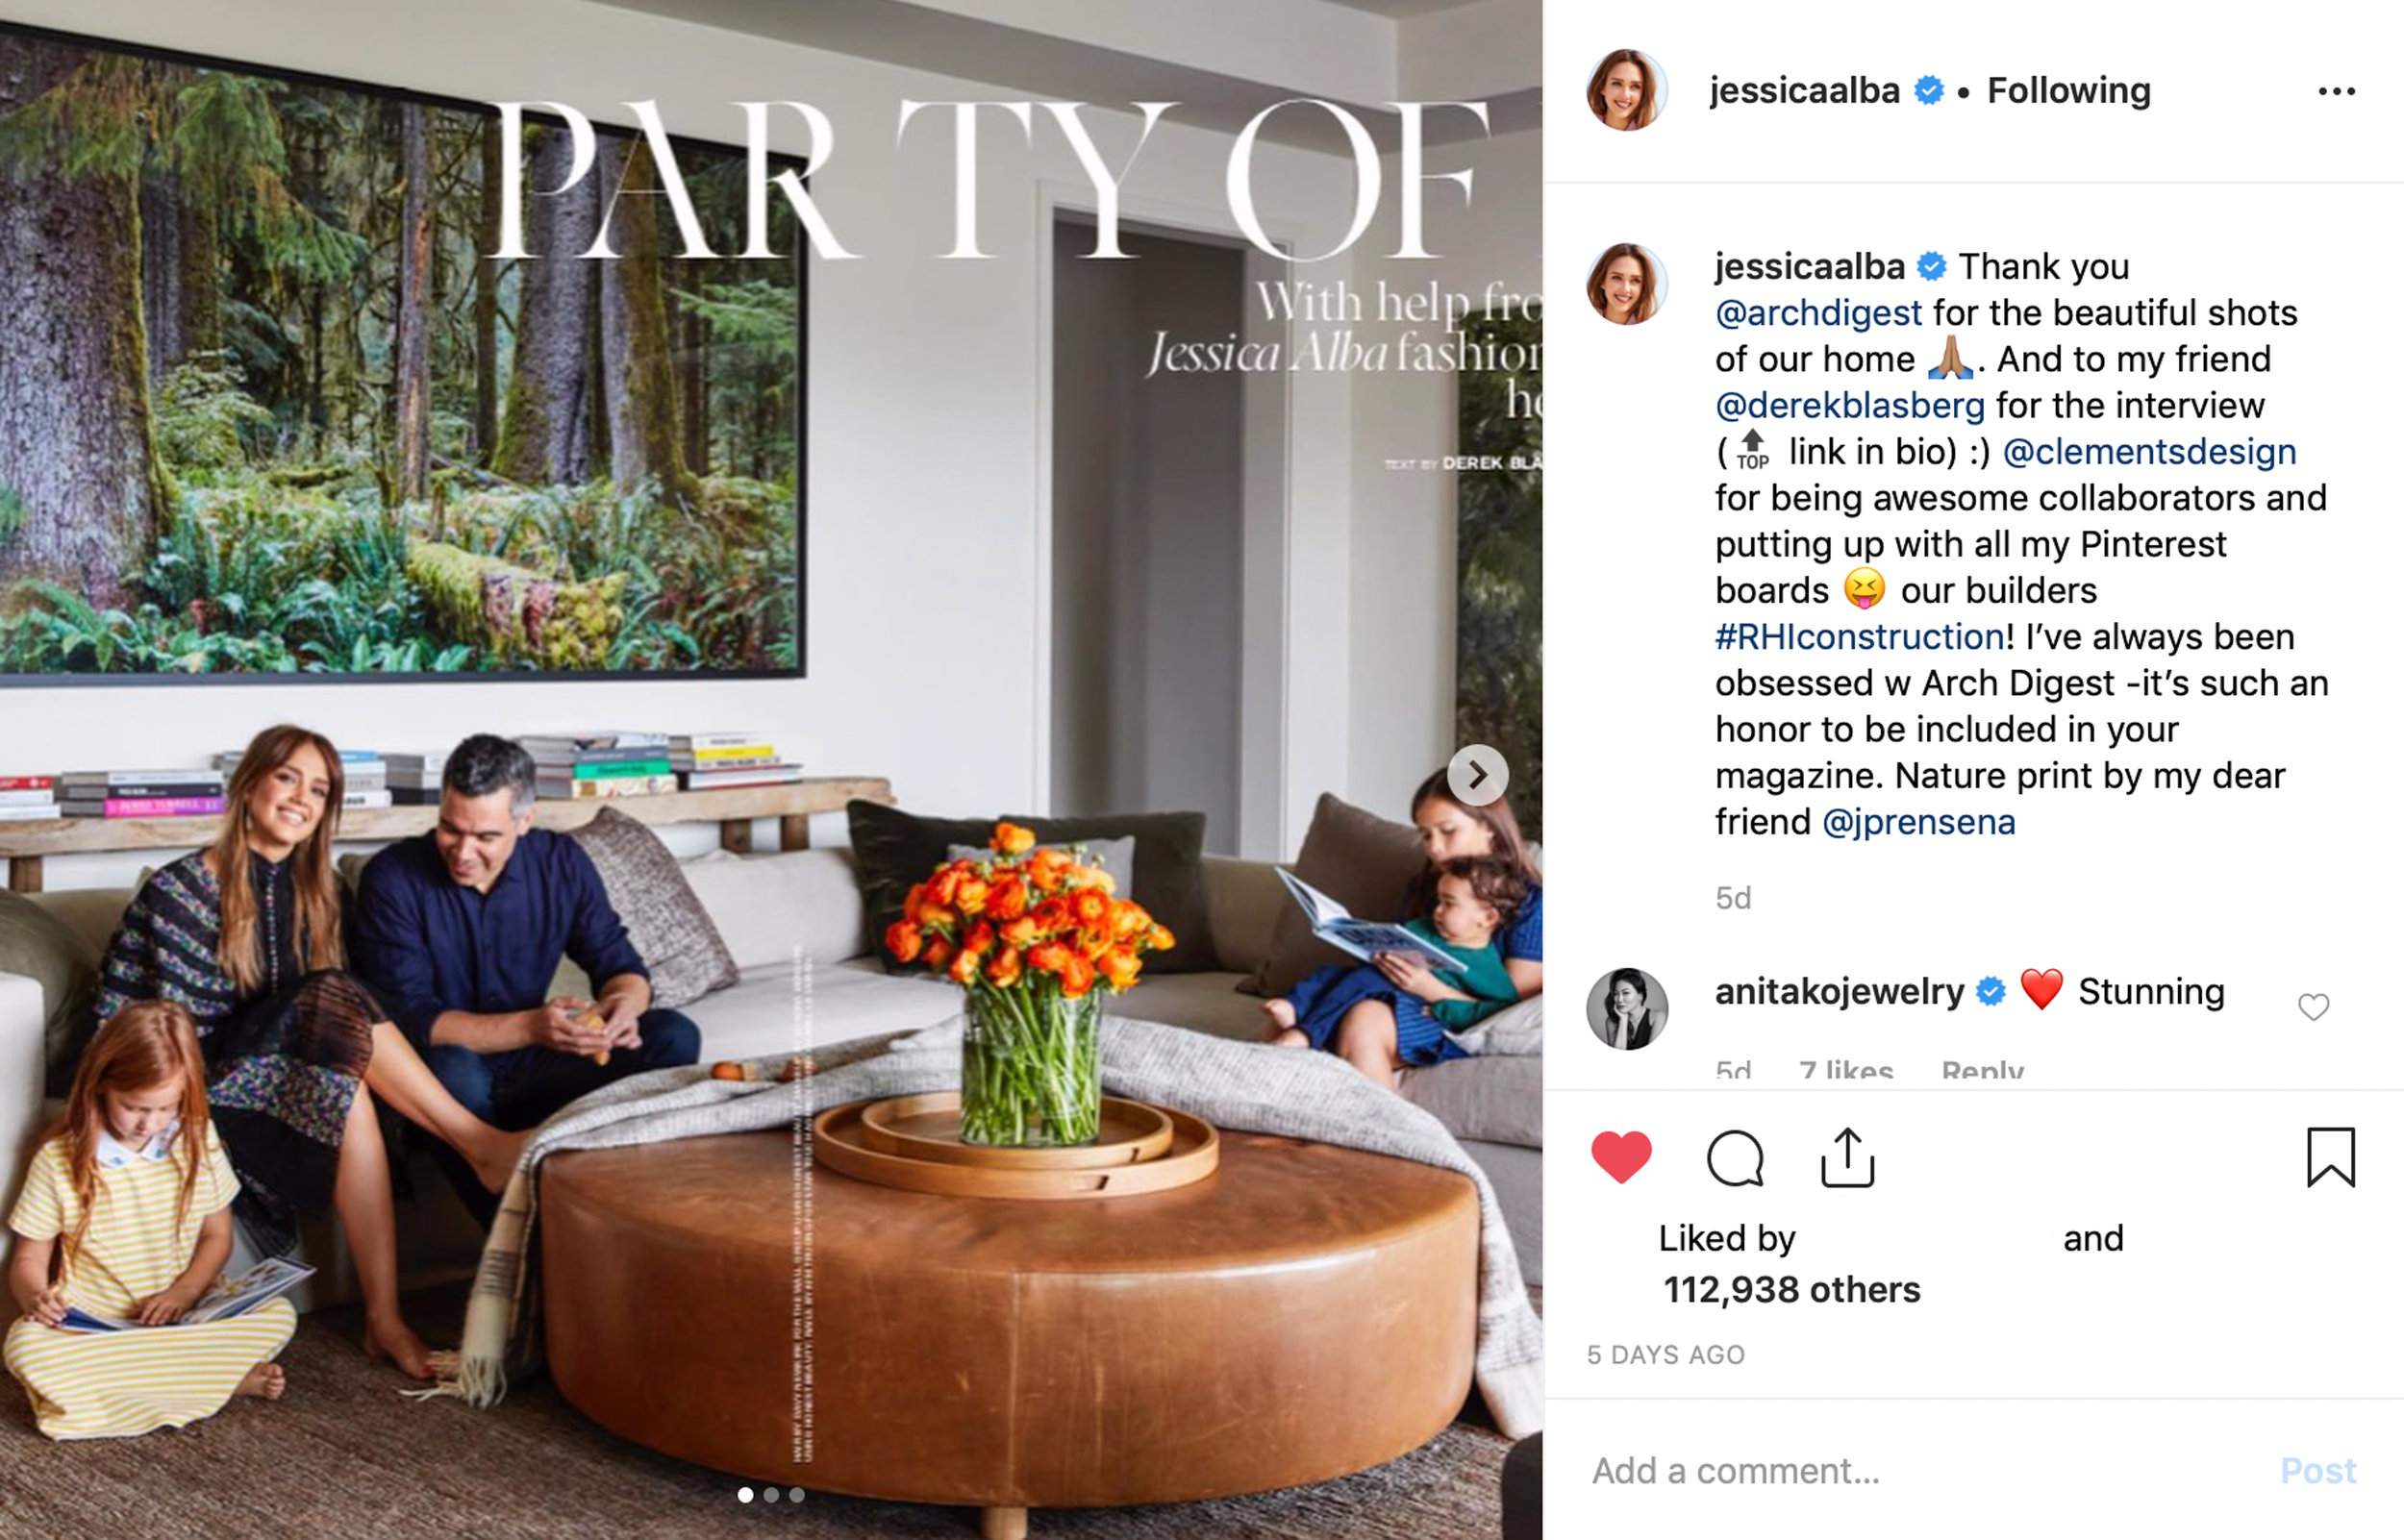 Architectural Digest Cover Story: Jessica Alba's Heaven On Earth, June 2019 (58x103 inches Hoh Rainforest Print)